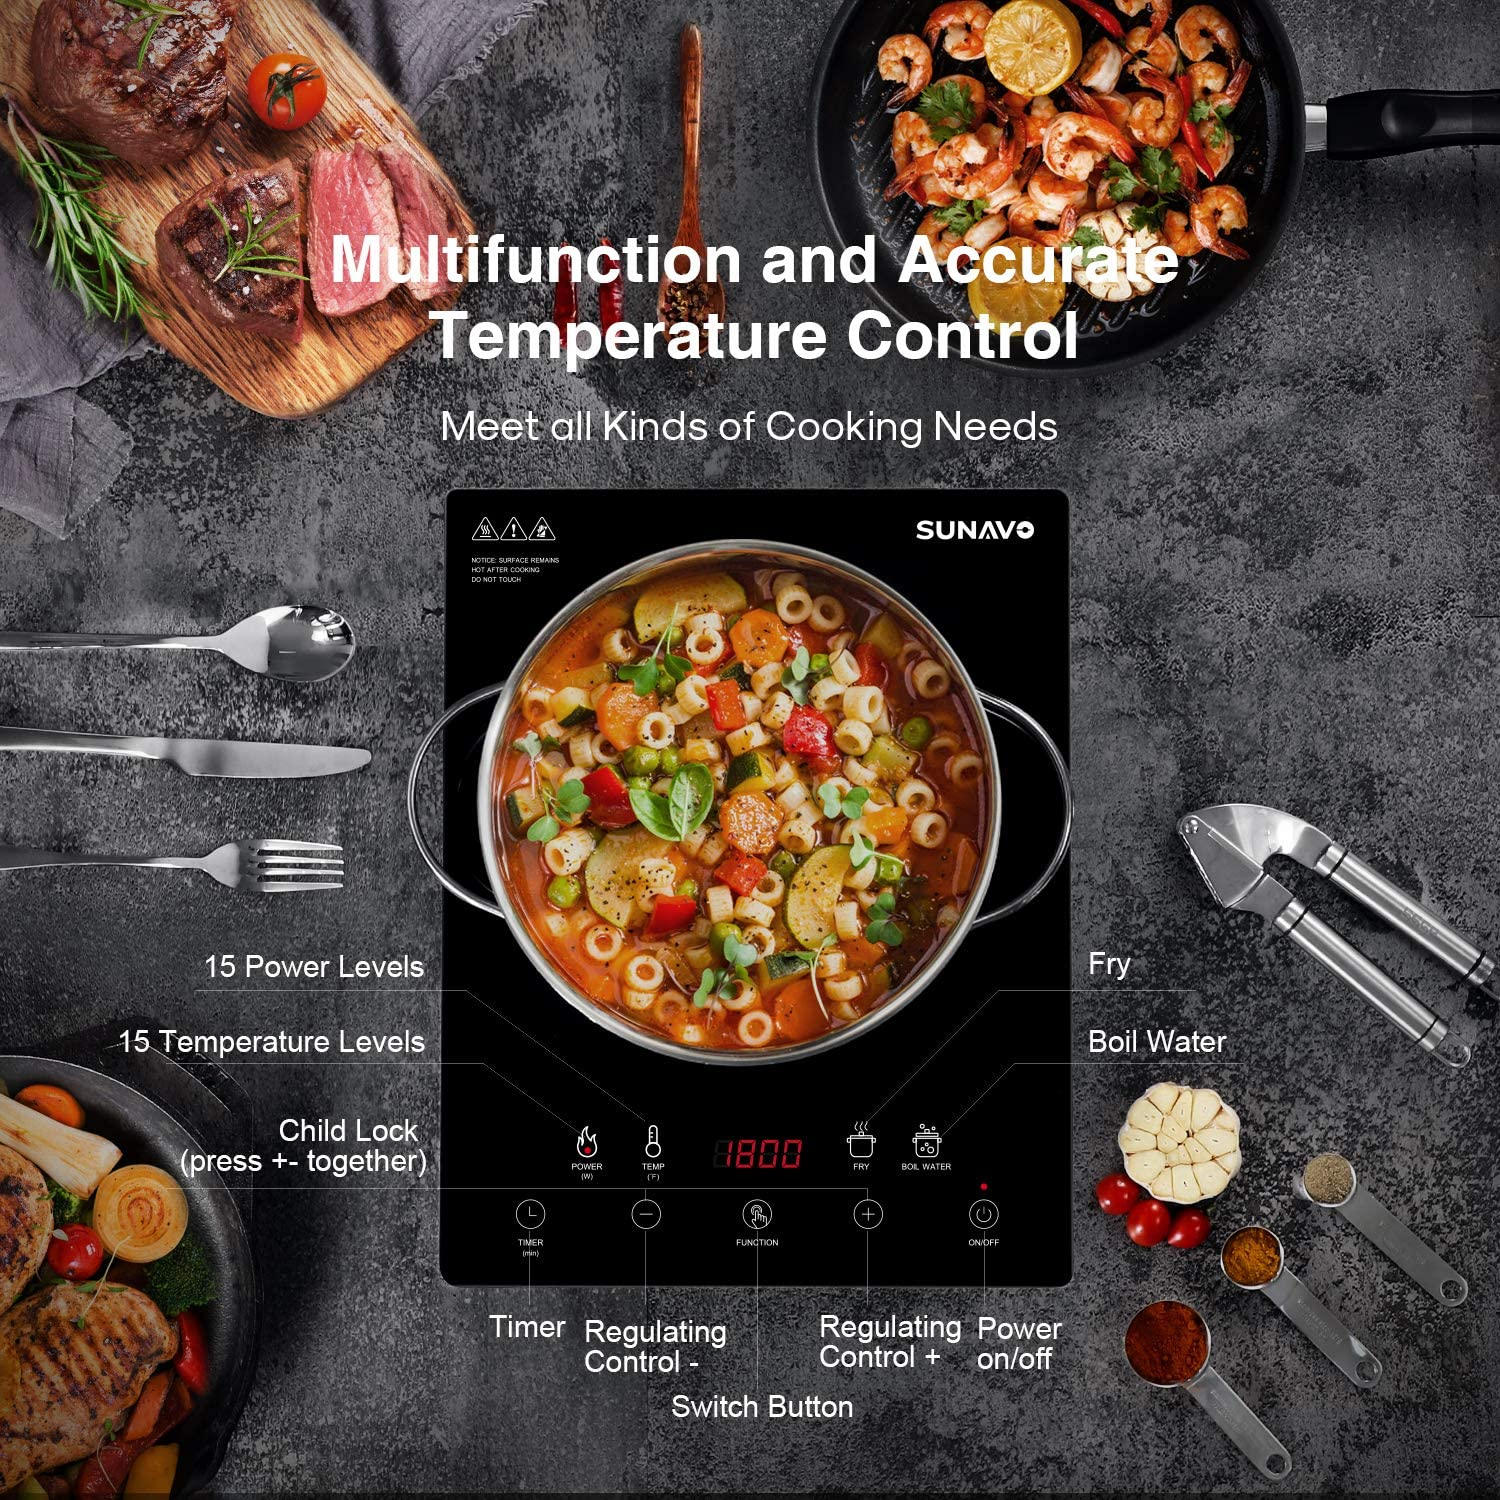 SUNAVO Portable Induction Cooktop Sensor Touch CB-I11A 1800W Induction Burner 15 Temperature Power Setting